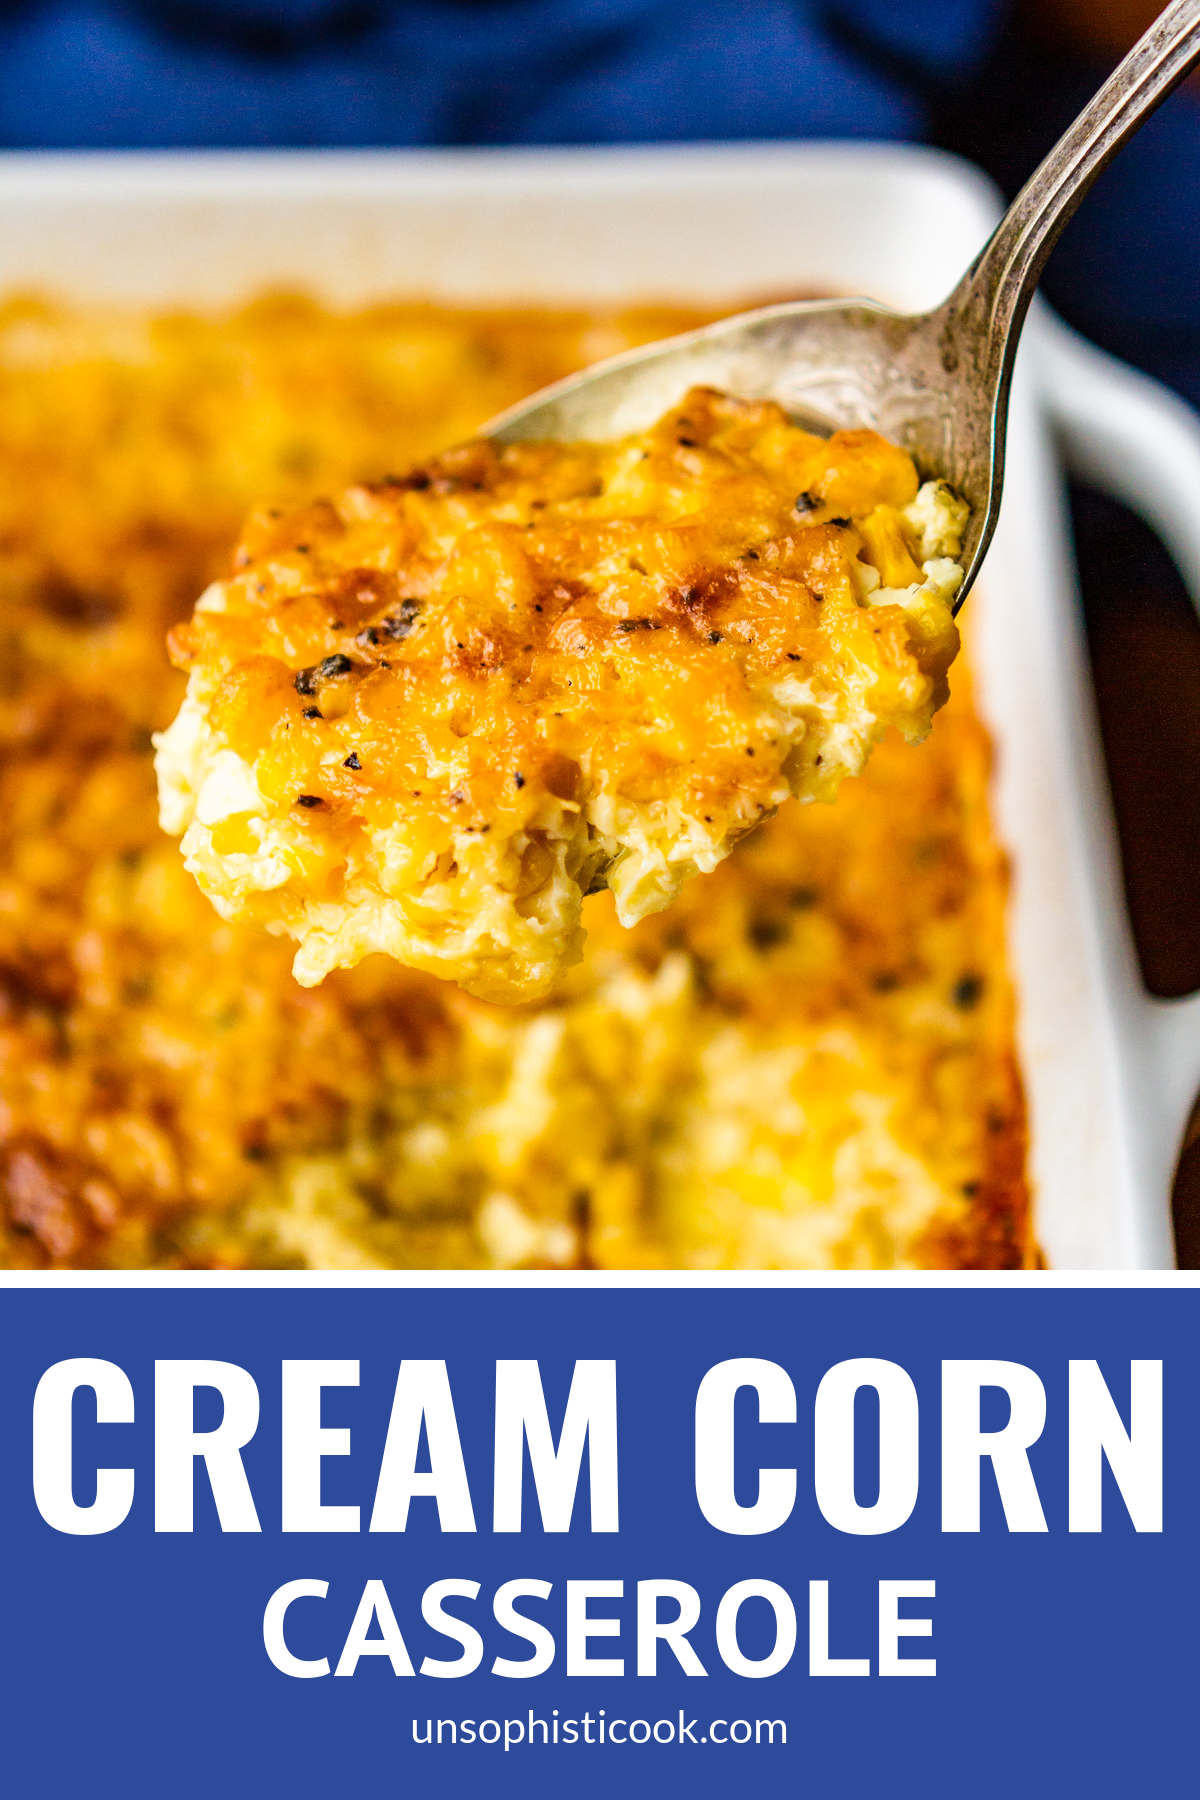 Corn Casserole Recipe -- This cream corn casserole recipe is SO good you'll want to scrape the dish completely clean to get every last bit of caramelized goodness from the corners... My favorite of all the corn casserole recipes I've tried, just like my grandma made it!   baked corn casserole   sweet corn casserole   baked creamed corn casserole   corn casserole recipes   easy corn casserole   custard corn   corn pudding   corn souffle #sidedishes #comfortfood #potluck #thanksgiving #christmas